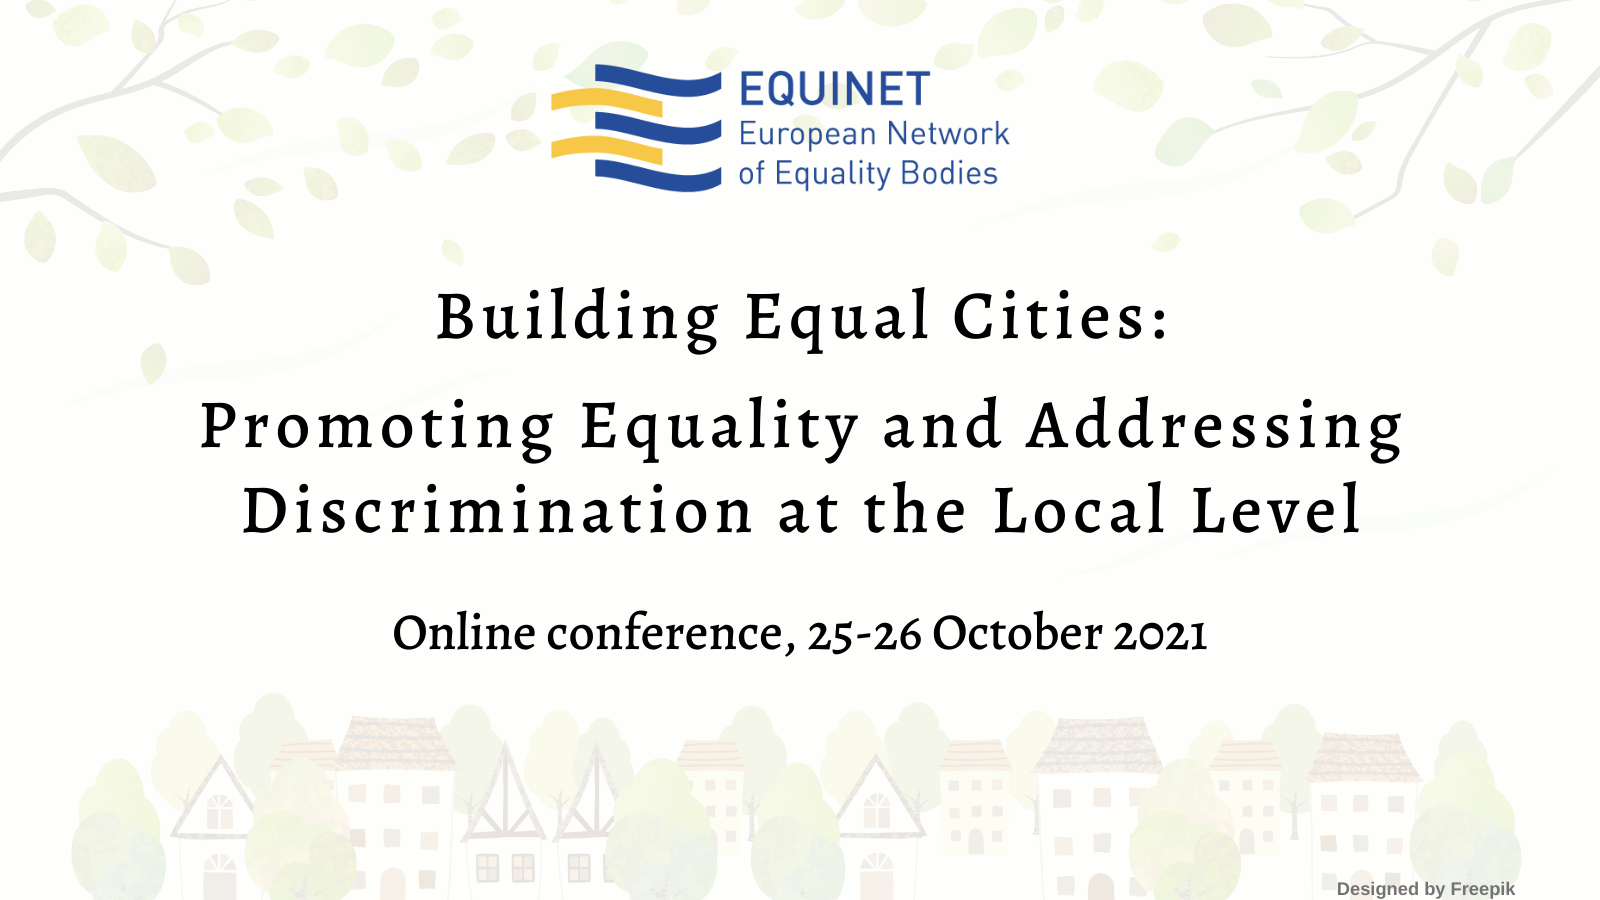 Building Equal Cities: Promoting Equality and Addressing Discrimination at the Local Level. 25-26 October 2021